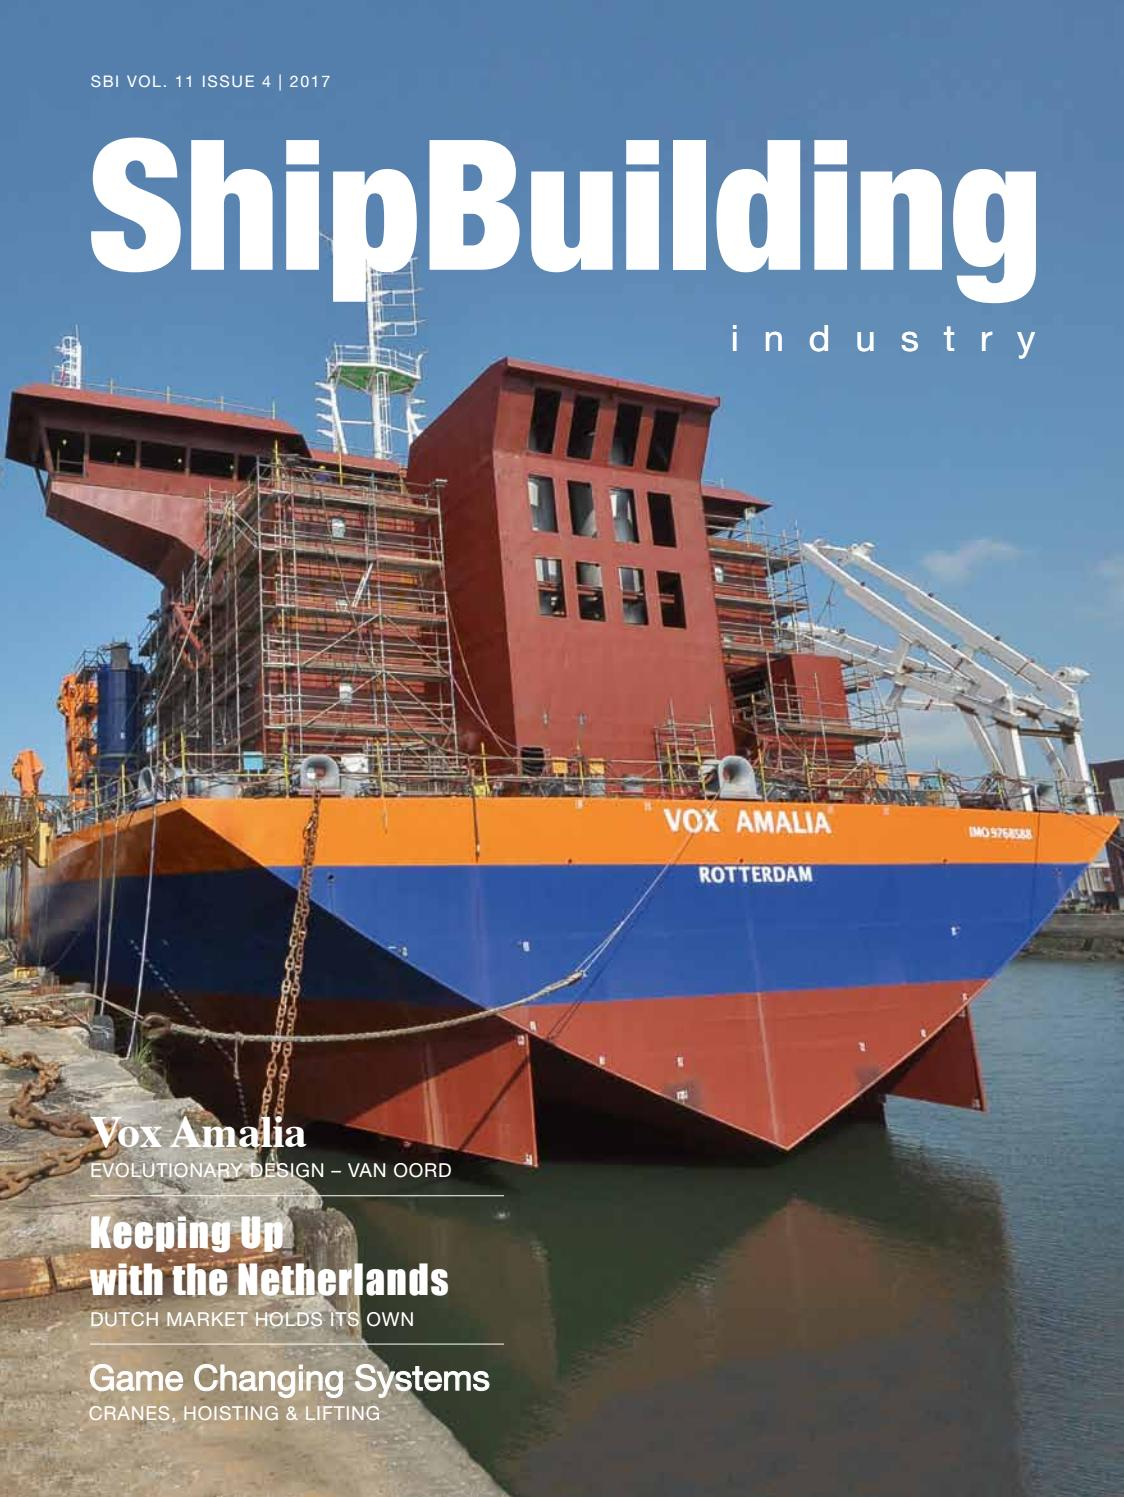 Shipbuilding Industry 2017 Issue 4 By Yellow Amp Finch